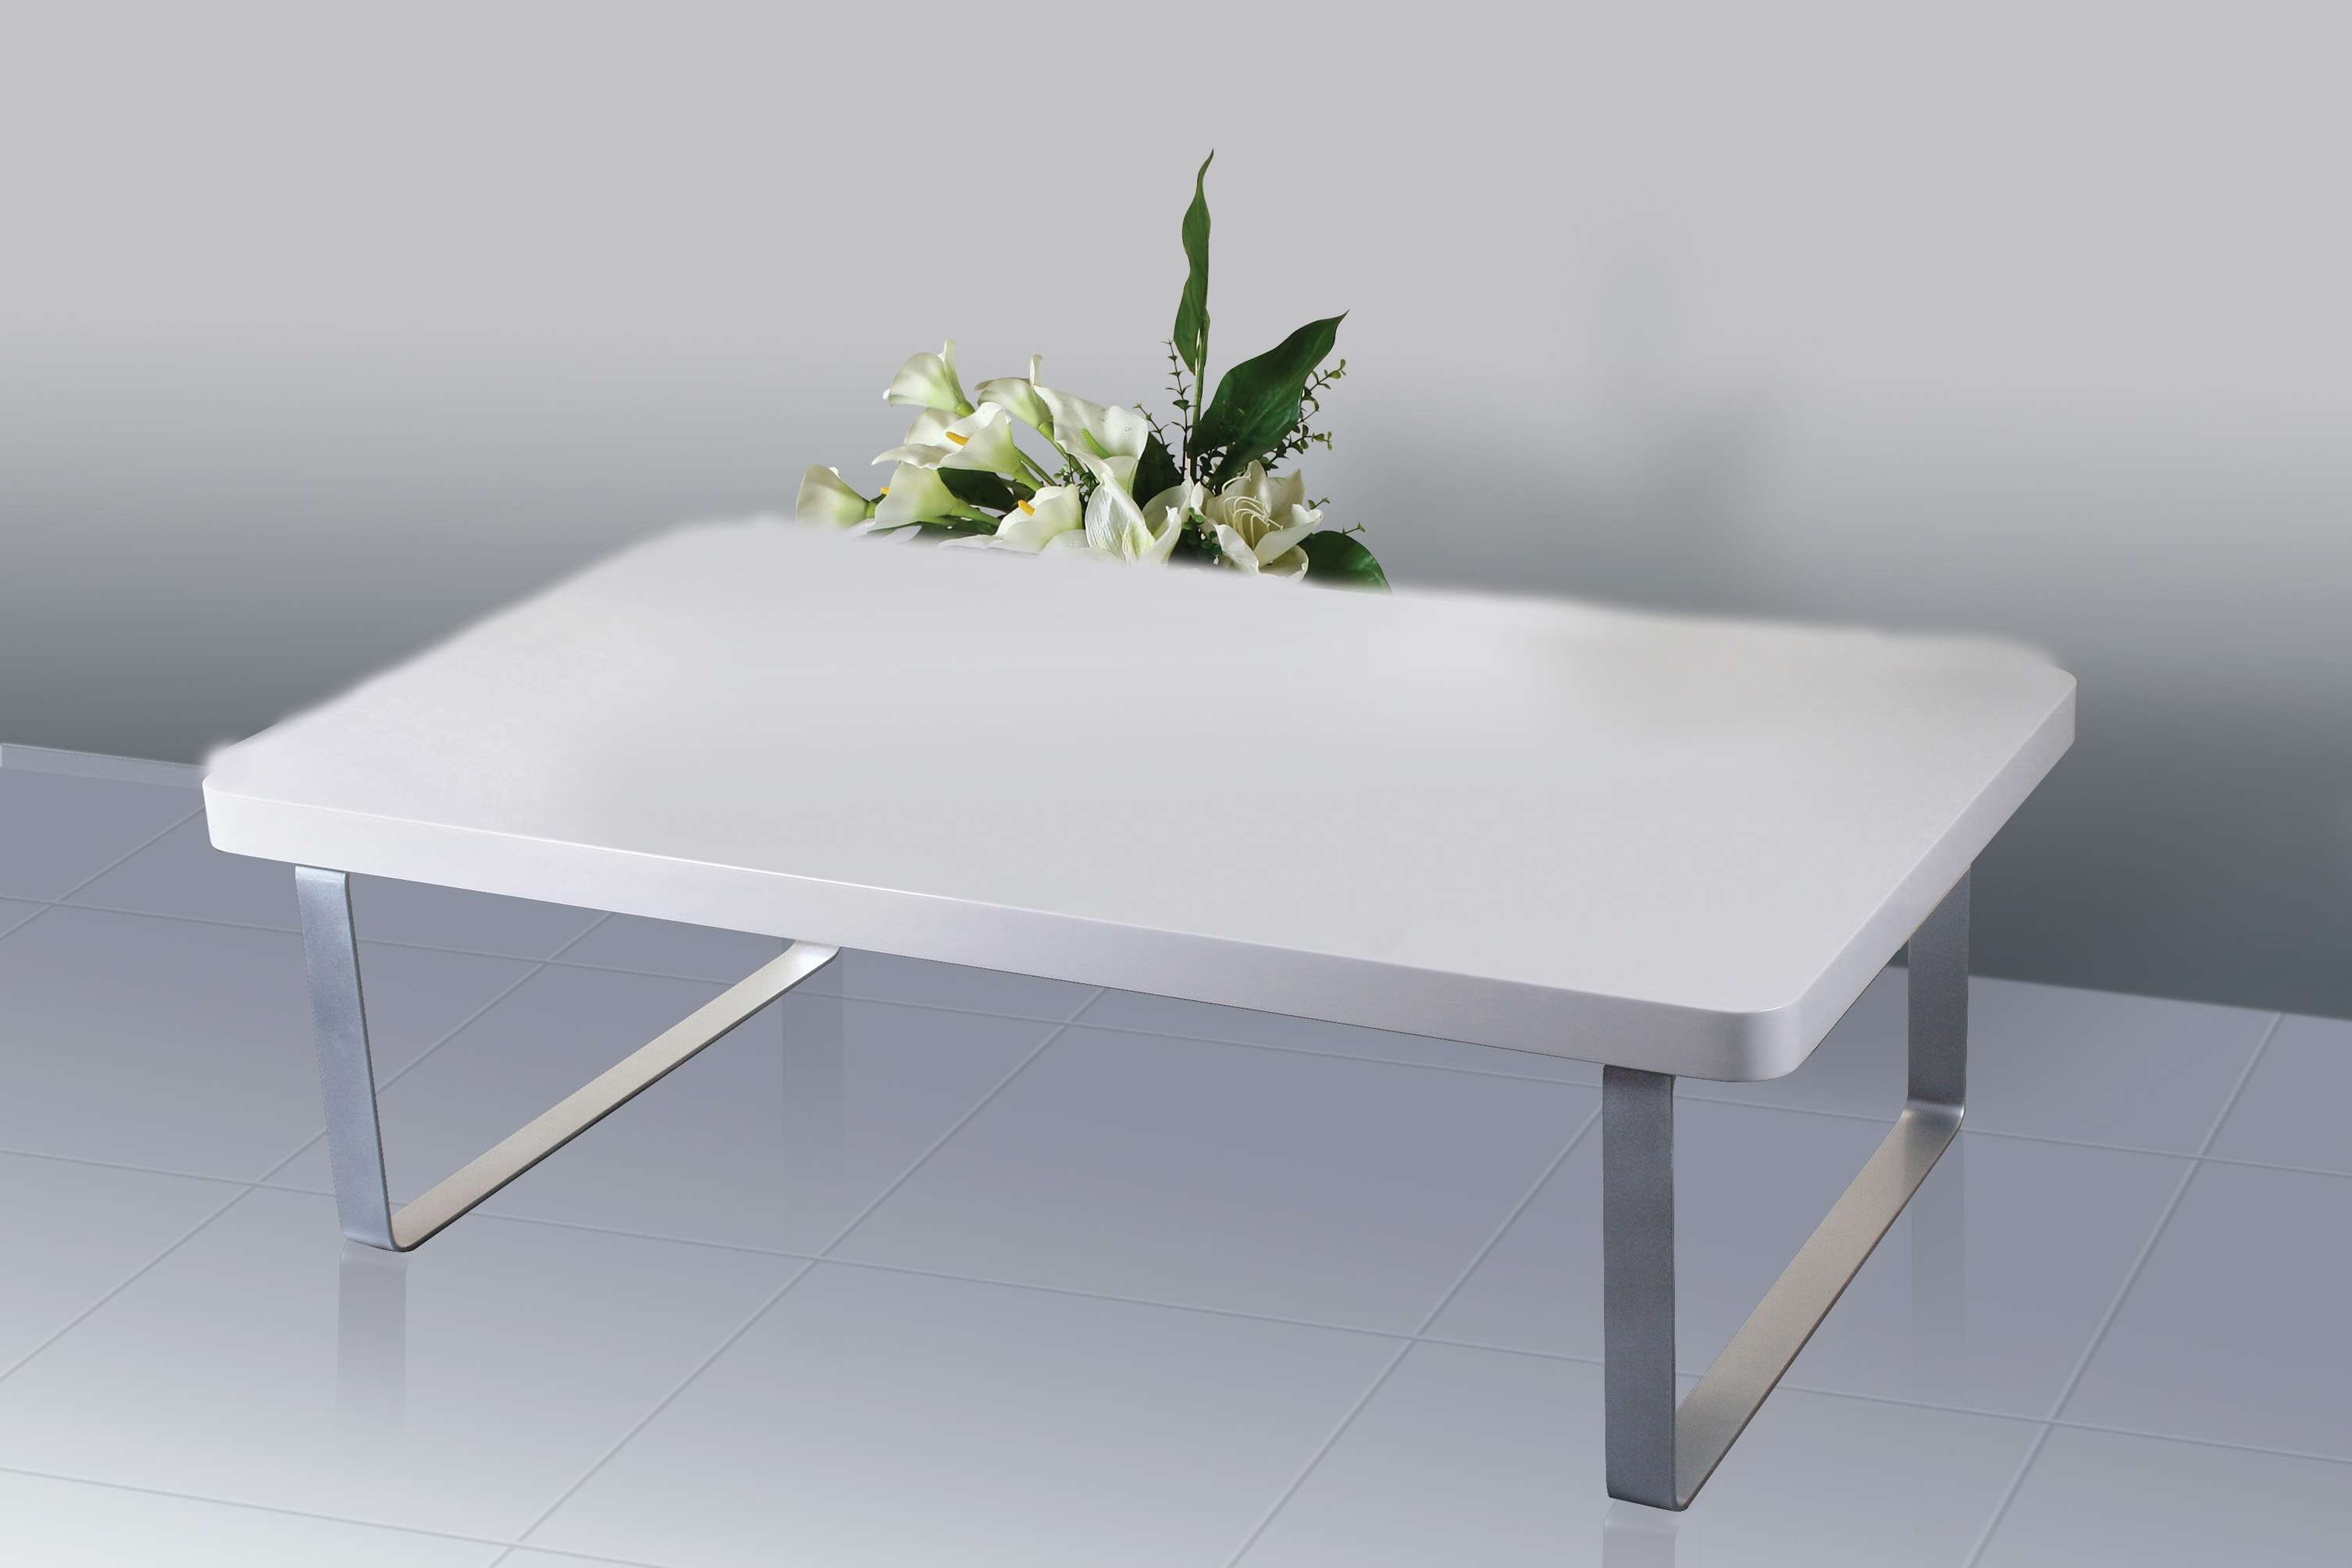 Well Known Coffee Tables White High Gloss Intended For White High Gloss Coffee Table Australia On With Hd Resolution (View 15 of 20)